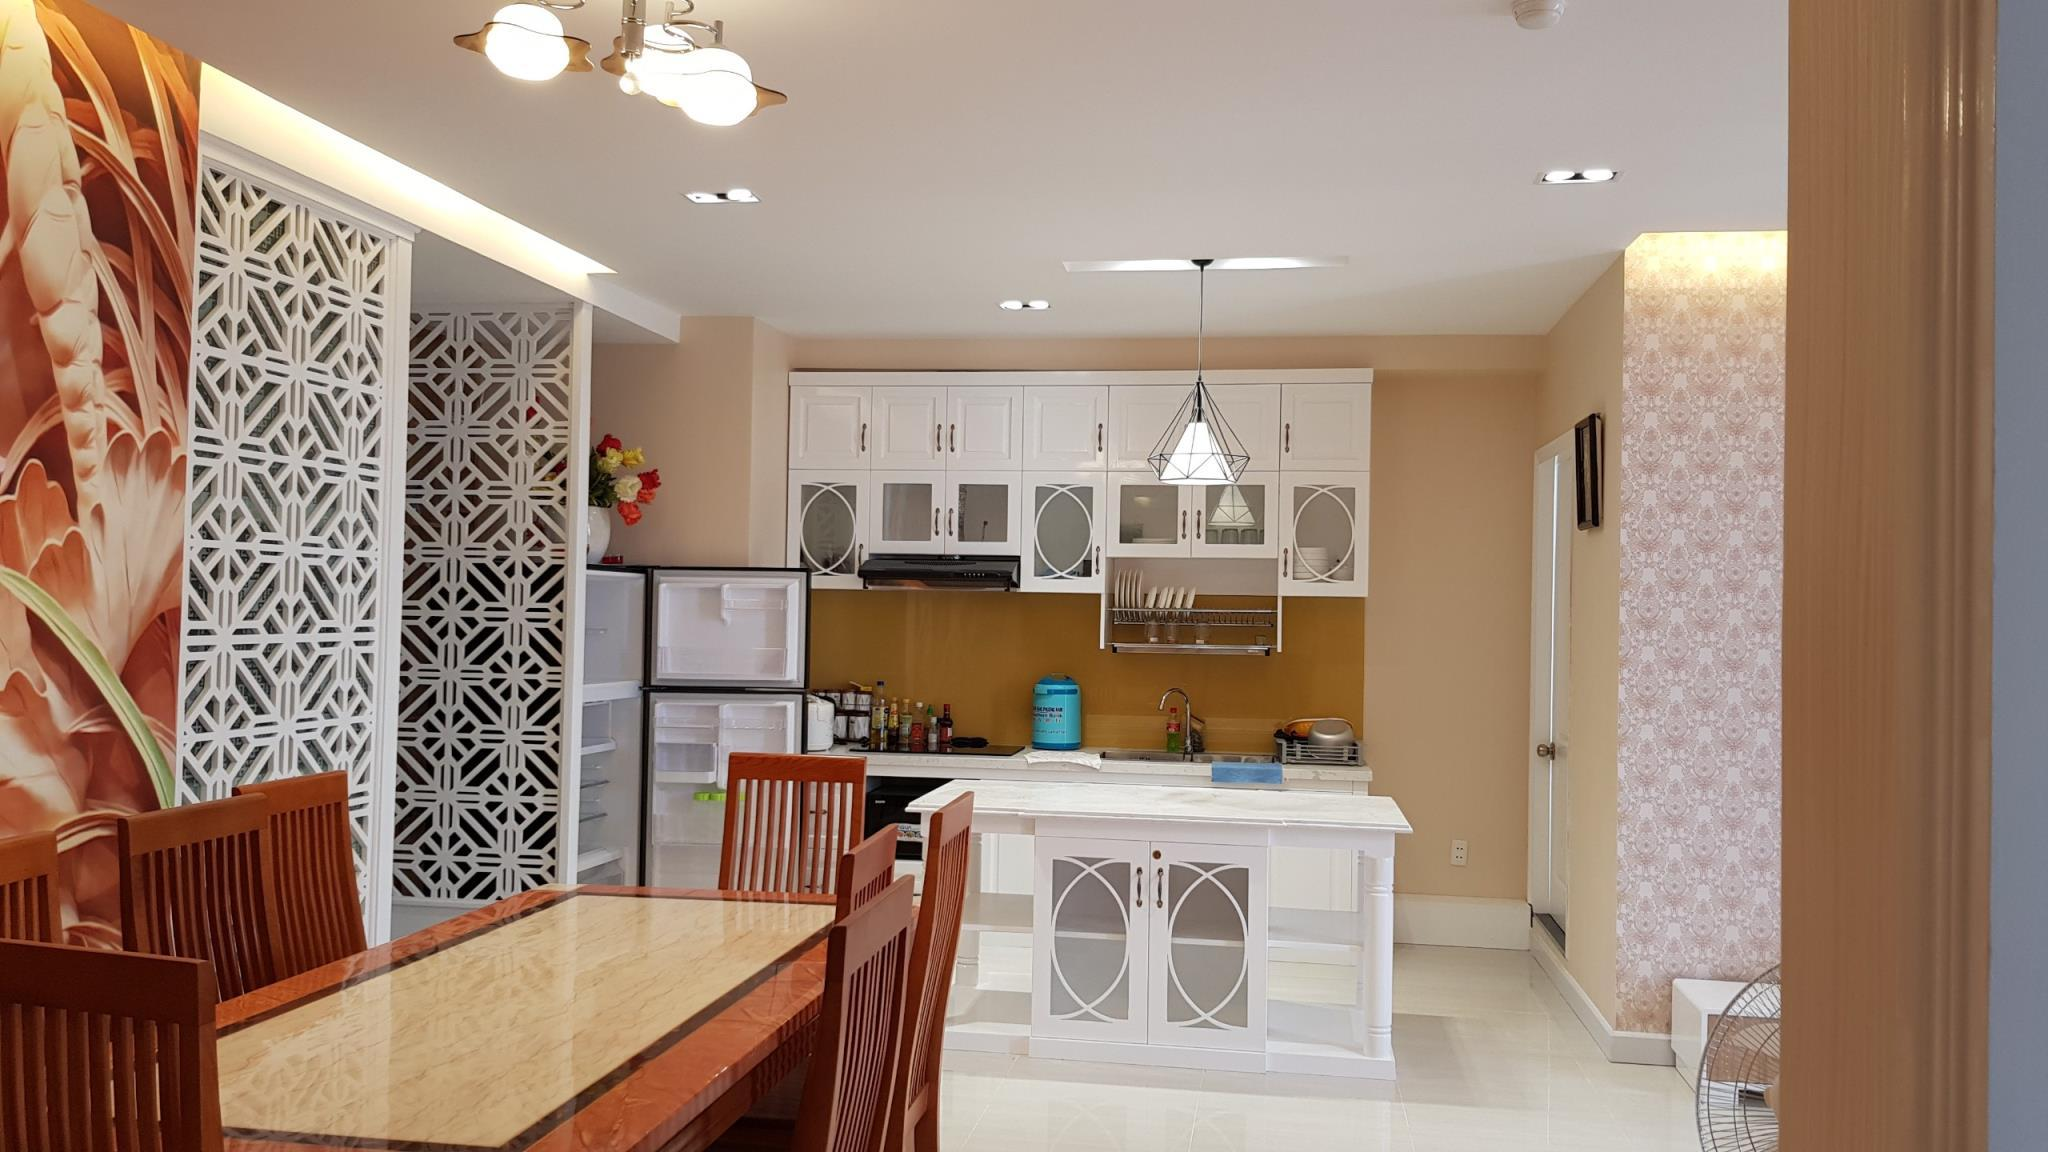 Sunsea Home  Son Thinh 2. 3BR  Unit 19M